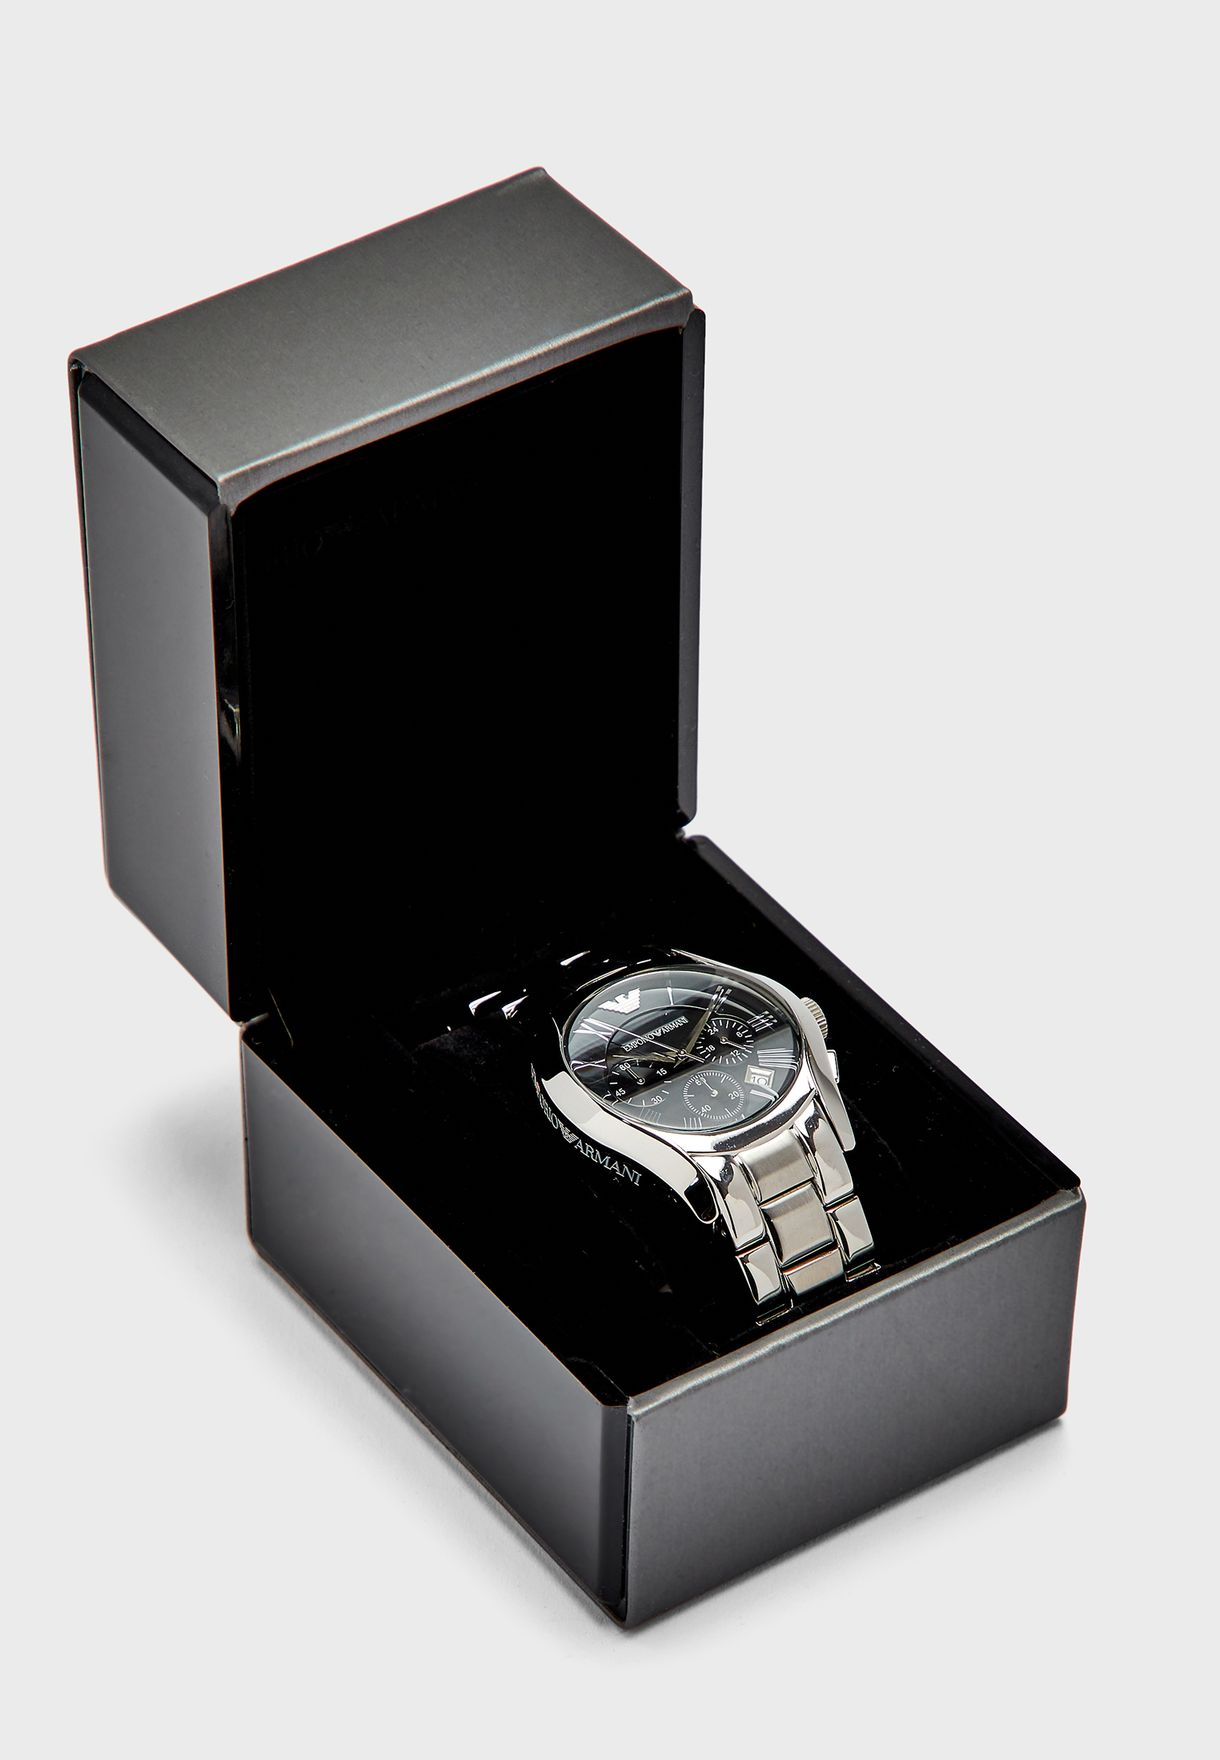 AR0673 Analog Watch